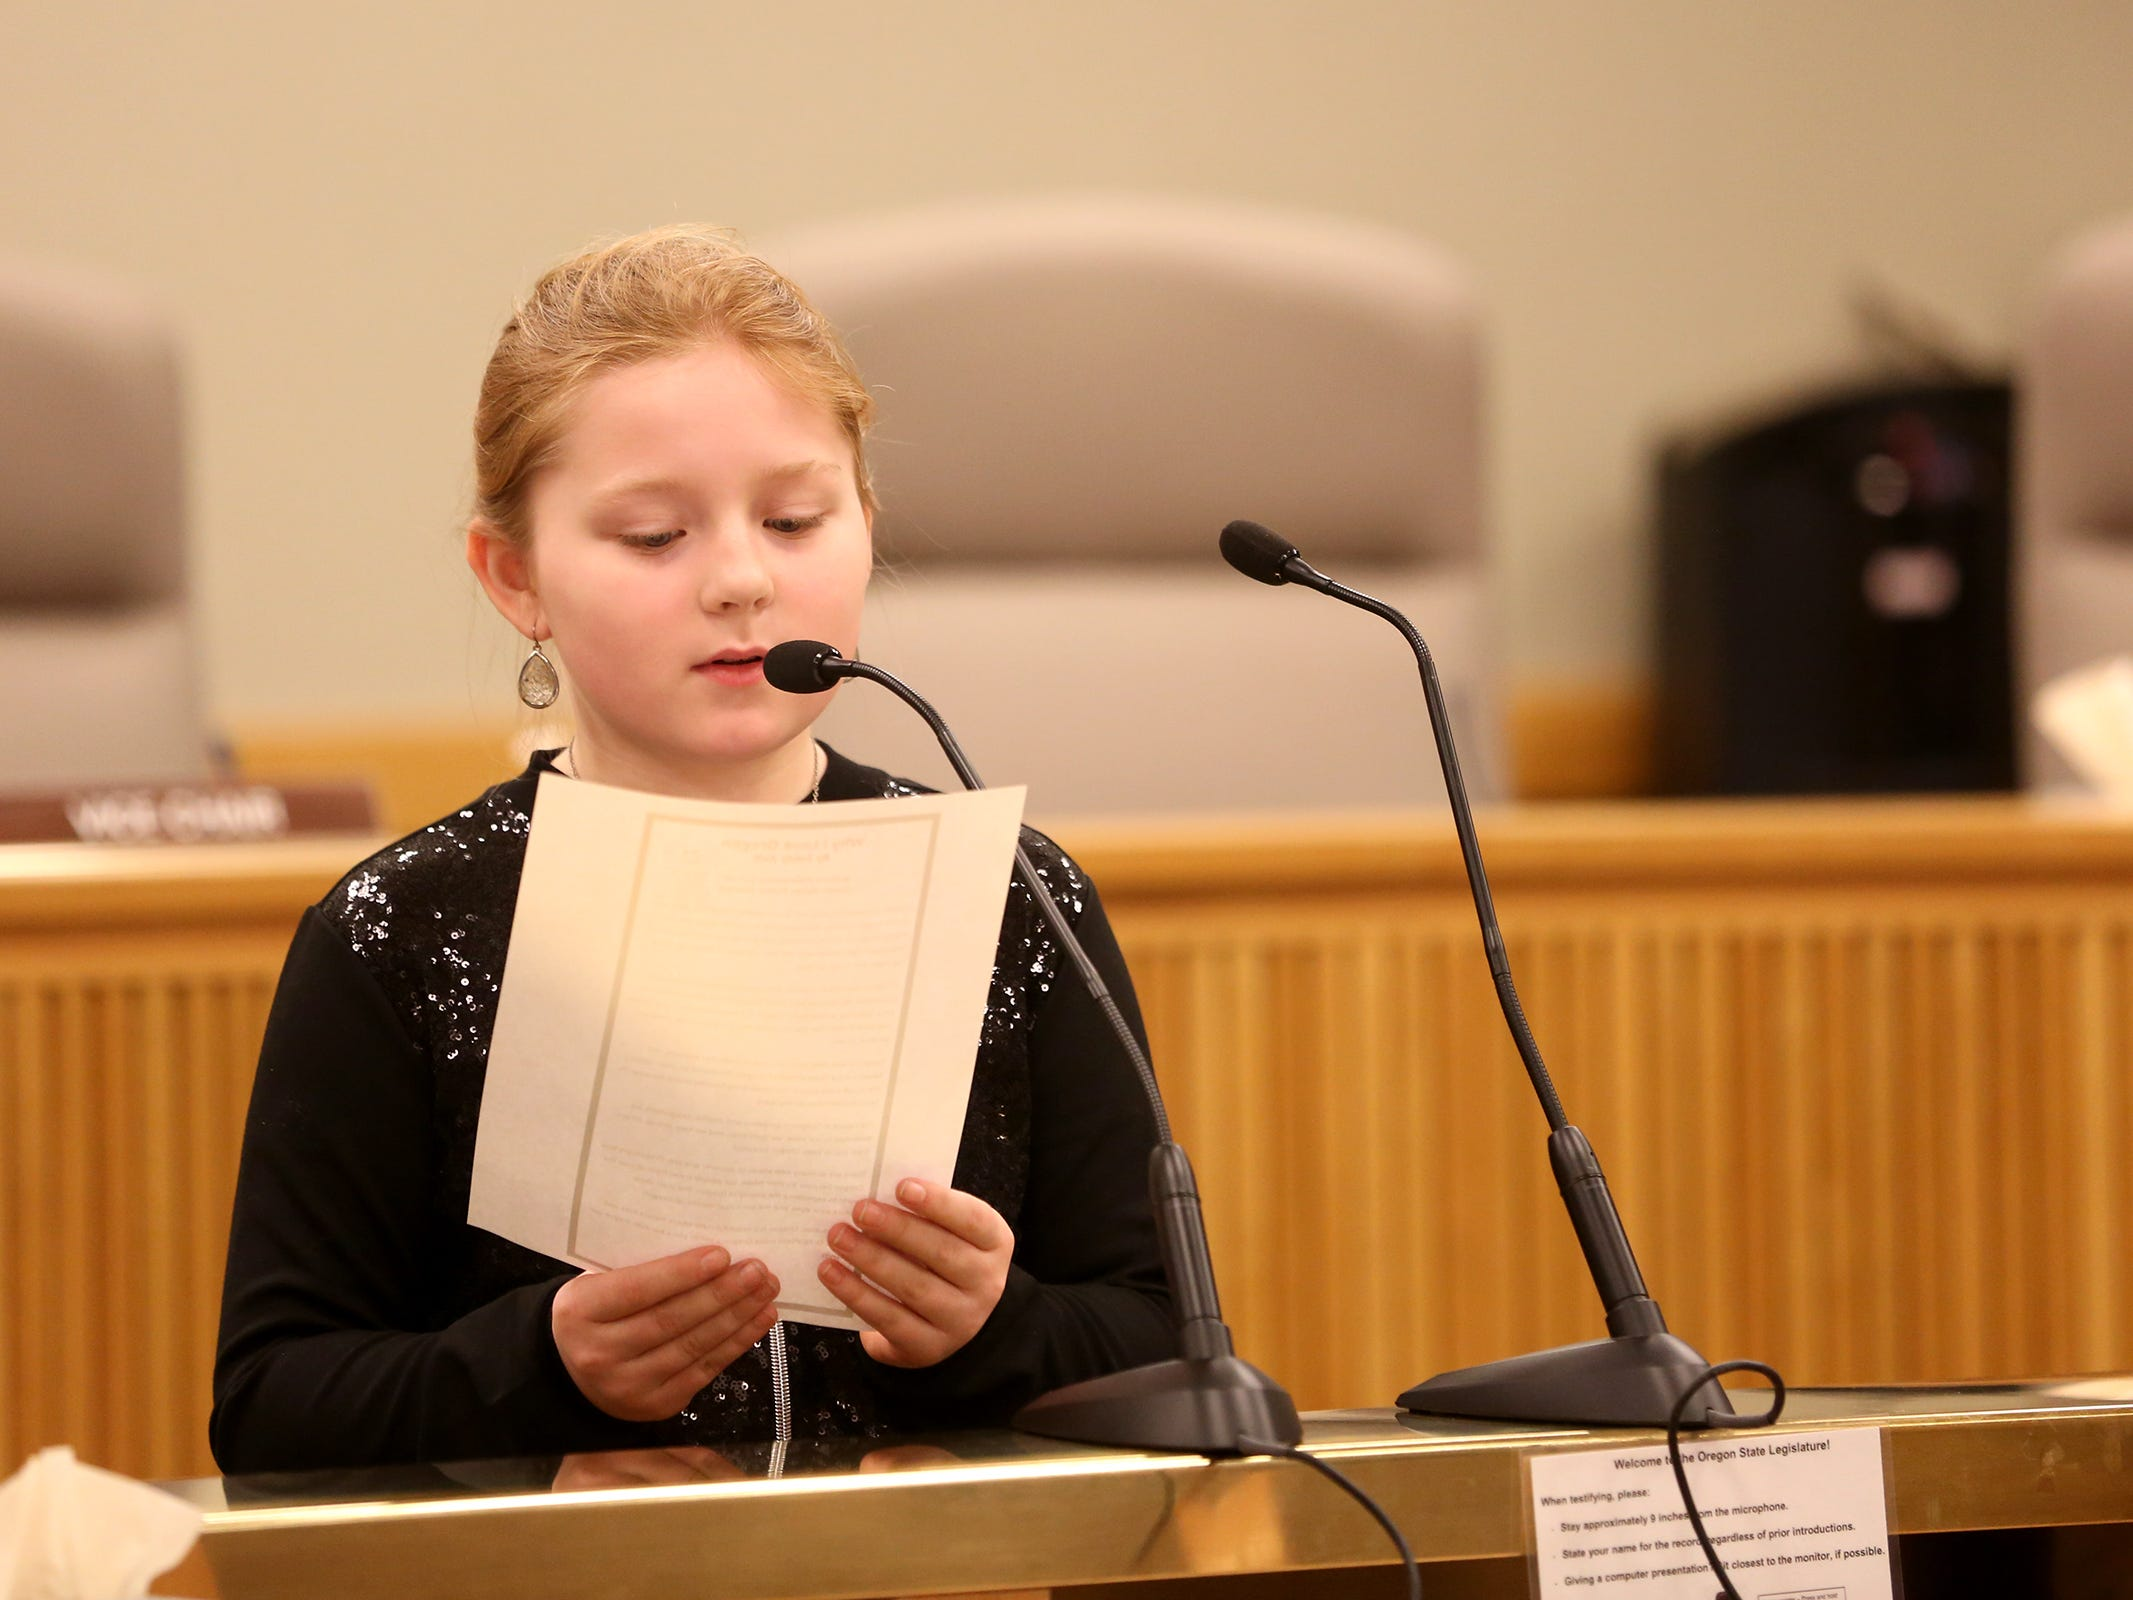 Essay contest winner Emily Ault, 10, reads an essay she wrote on how she sees Oregon during Oregon's 160th Birthday Celebration at the Oregon State Capitol in Salem on Saturday, Feb. 16, 2019.